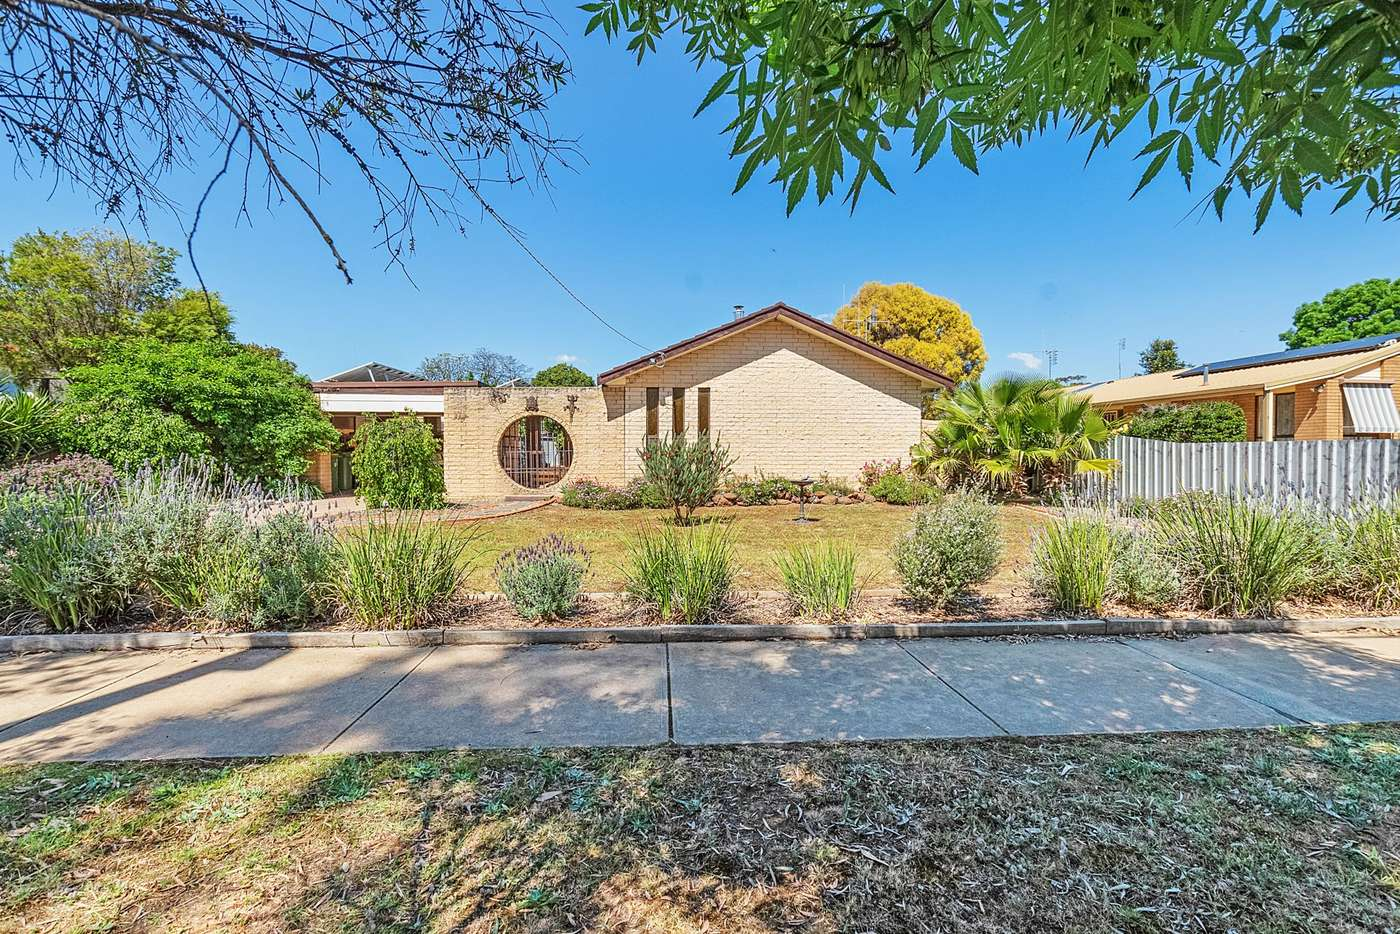 Main view of Homely house listing, 11 Moore Street, Rochester VIC 3561